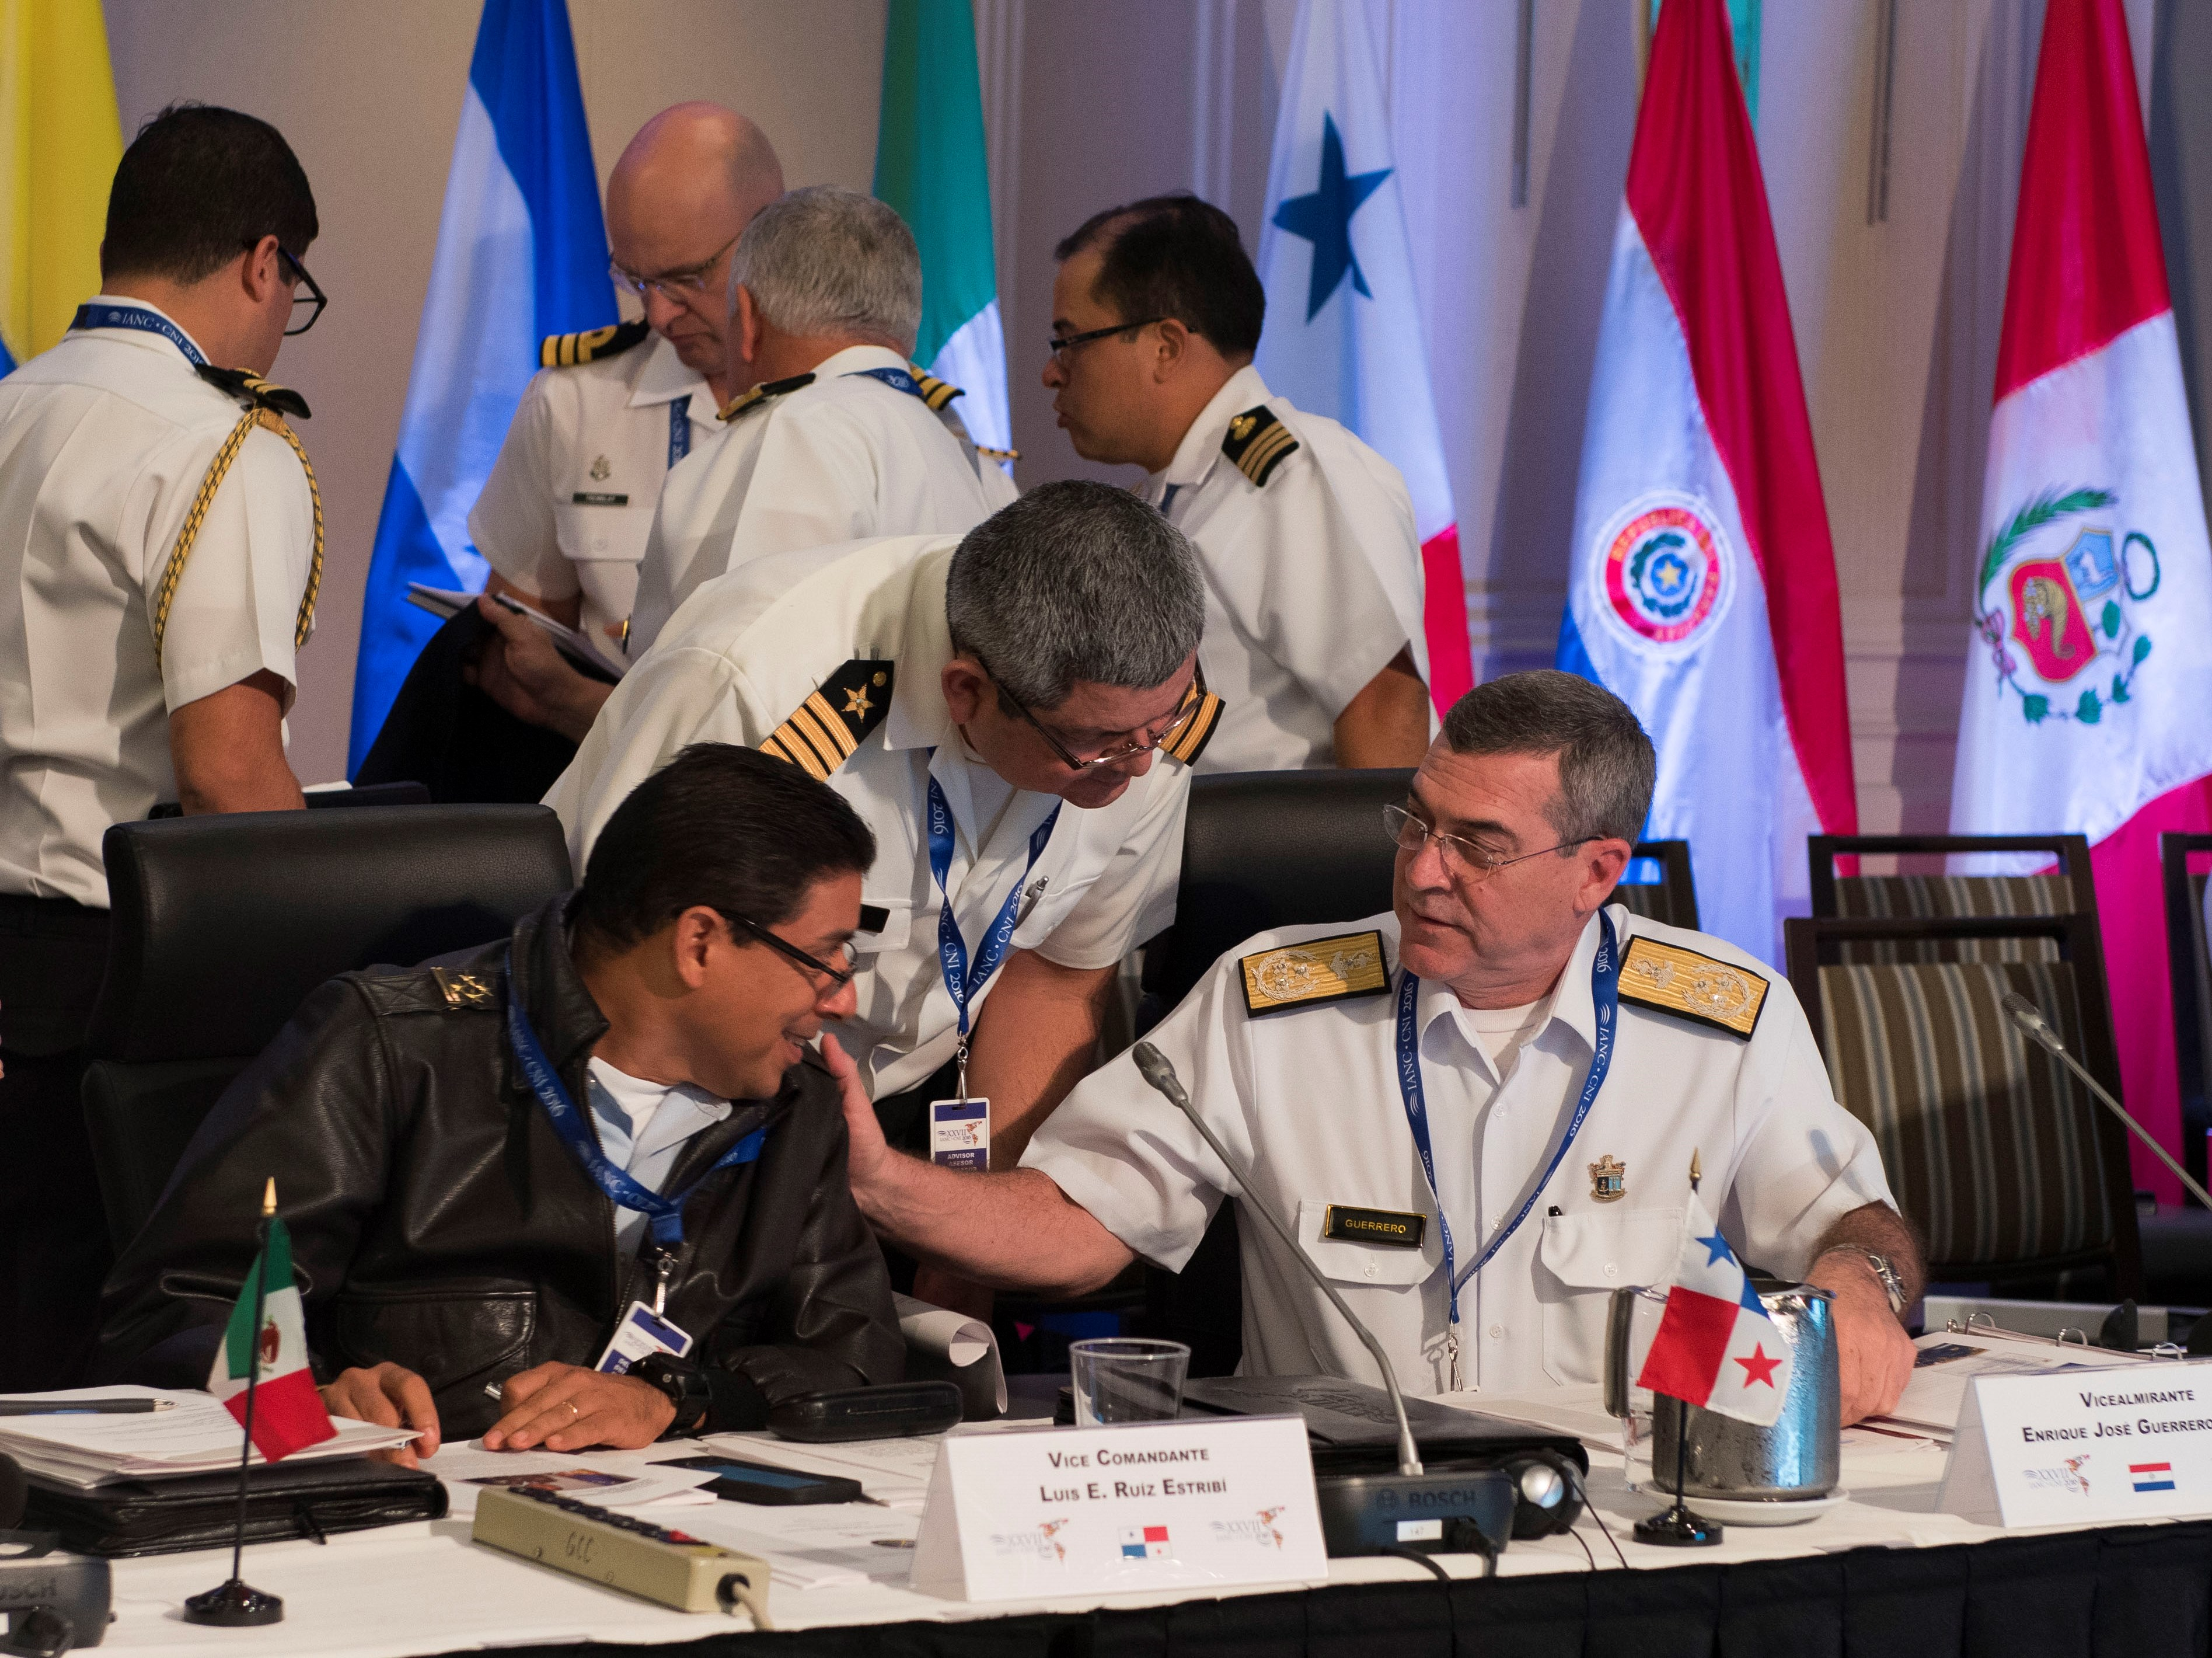 Vice Commandante Luis E. Ruiz Estribi (left), Commander of the National Aeronaval Service of Panama, and Vicealmirante Enrique Jose Guerrero Cali (right), Jefe de estado mayor de la armada paraguaya, have a discussion at the Inter-American Naval Conference in Halifax on June 14, 2016.